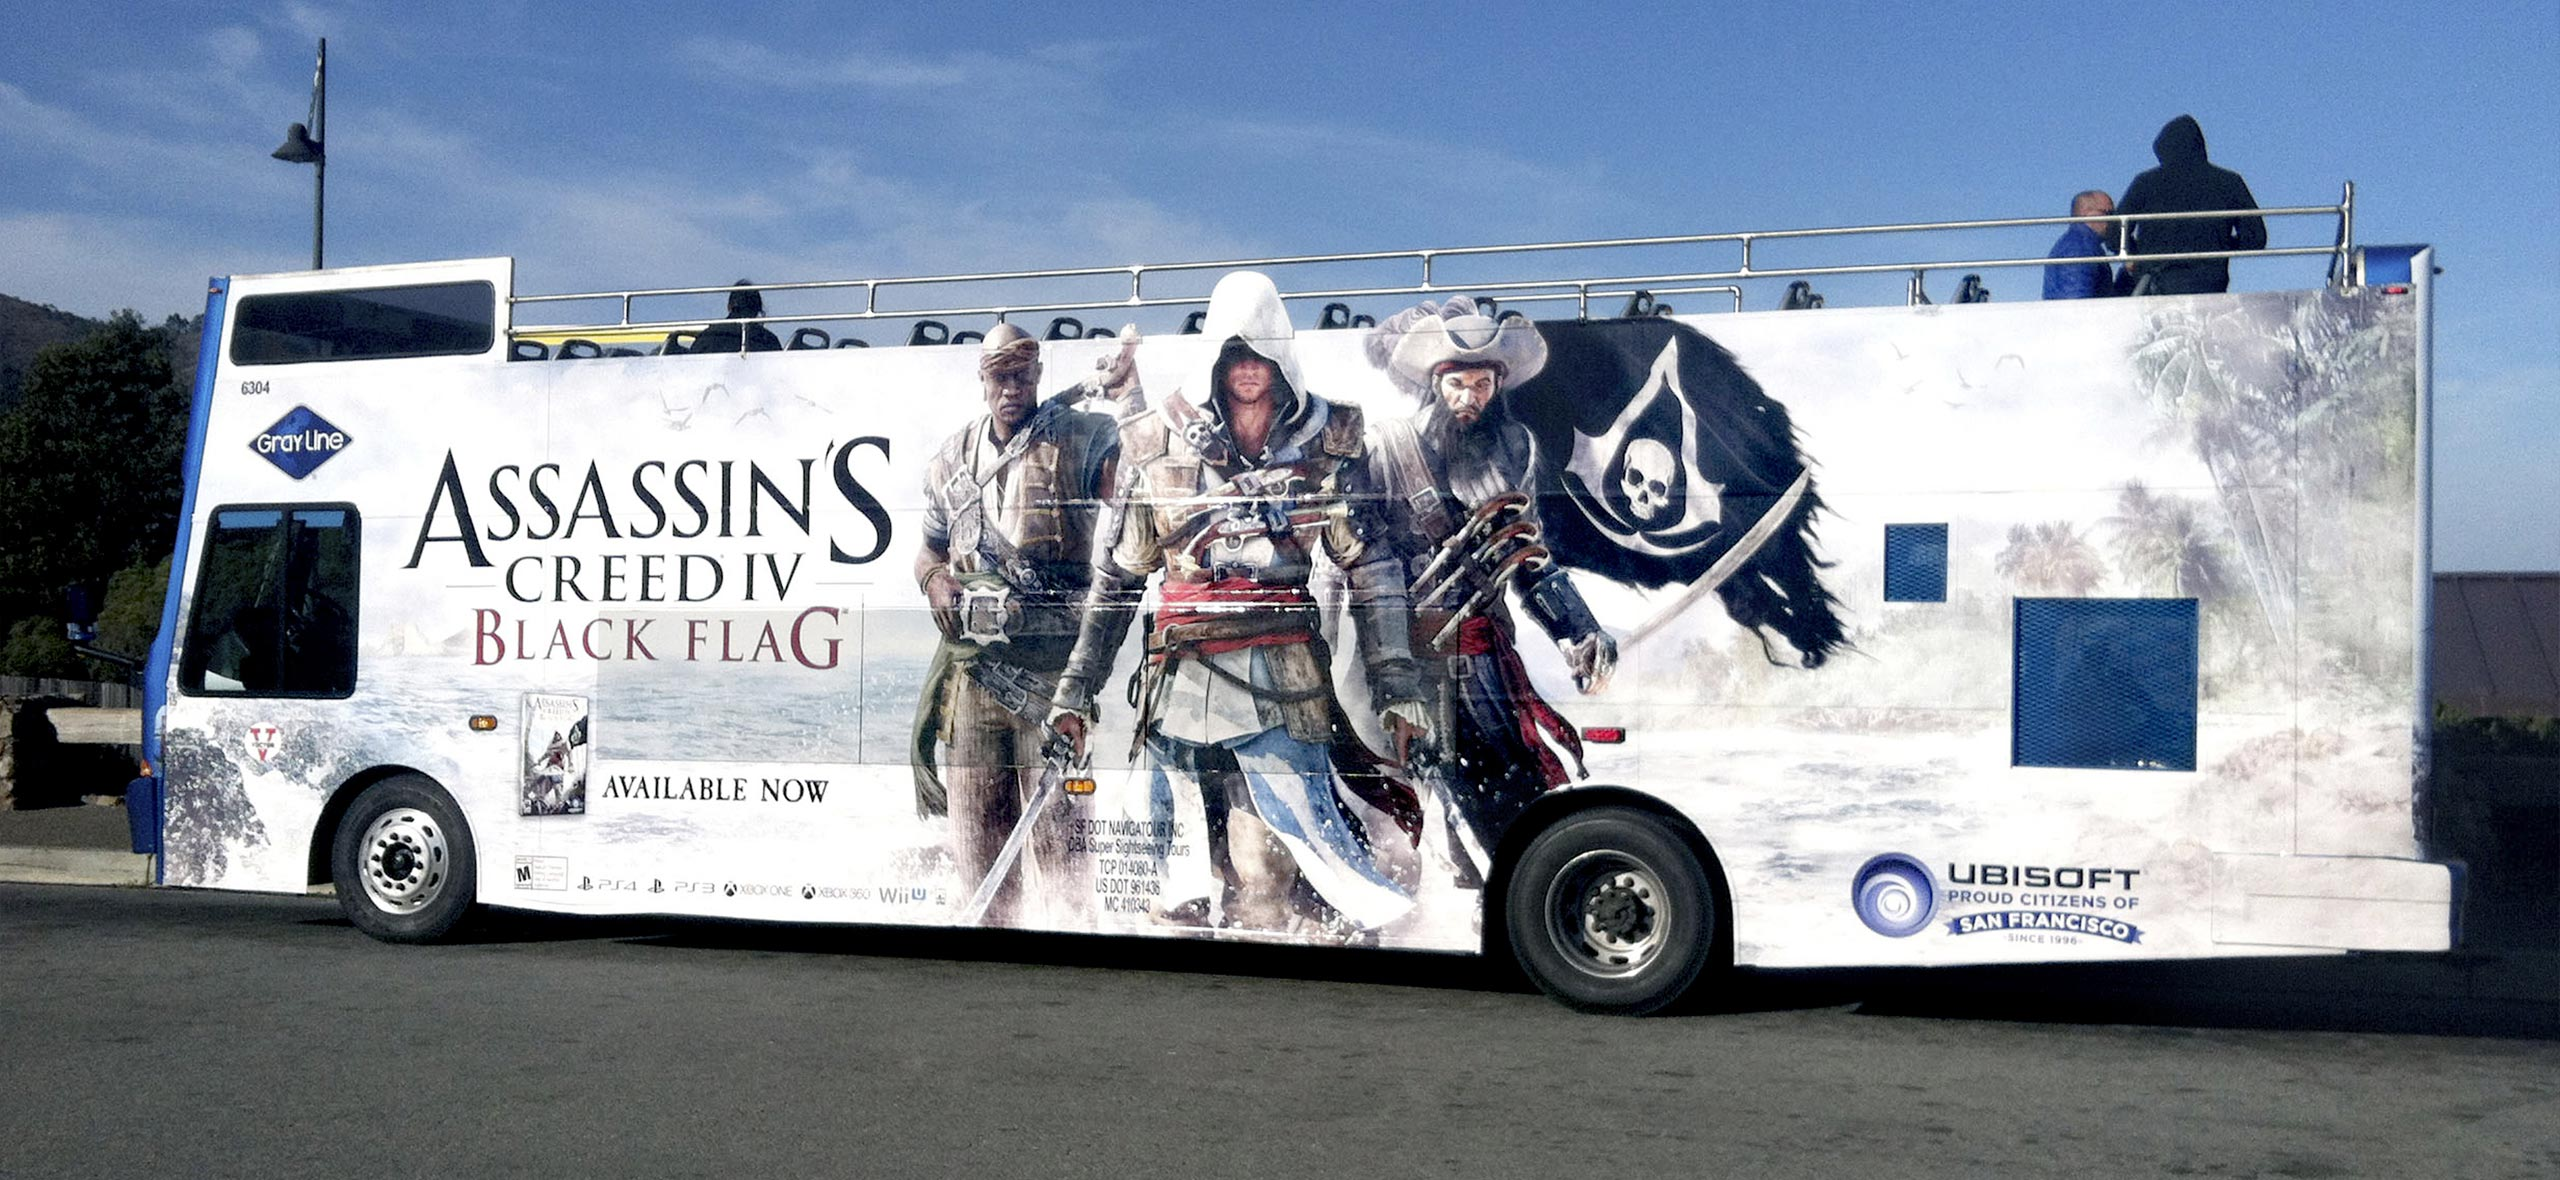 AT_ASSASINS_CREED_Black_Flag_photo_img_04